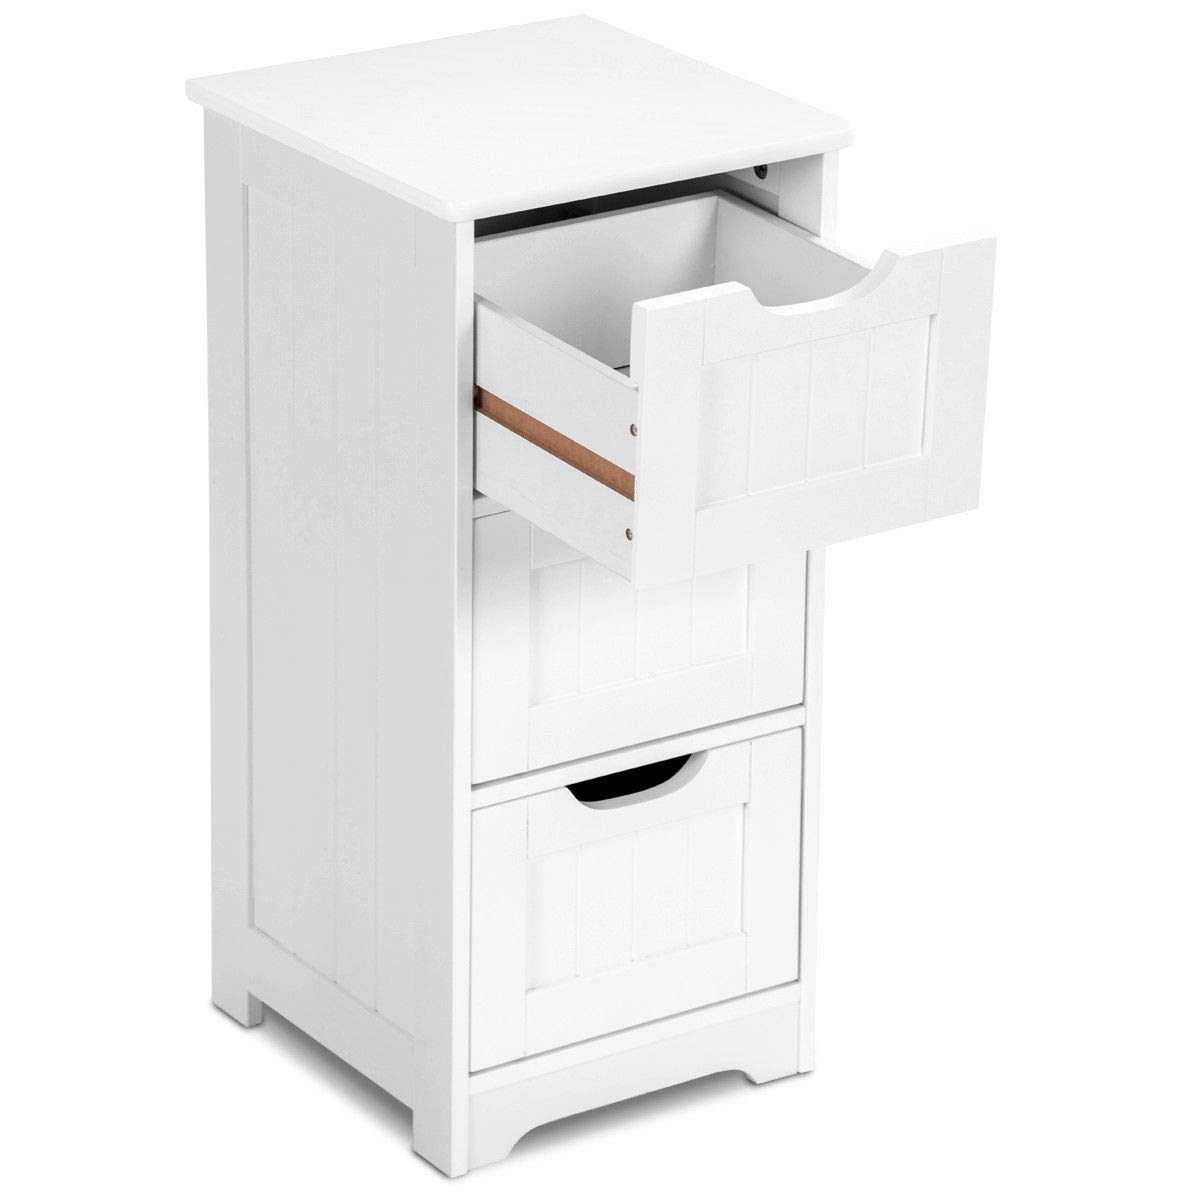 Tangkula Floor Cabinet with 3 Drawers Wooden Storage Cabinet for Home Office Living Room Bathroom Side Table Sturdy Modern Drawer Cabinet Organizer Bedroom Night Stand, White(3 Drawers) by TANGKULA (Image #7)